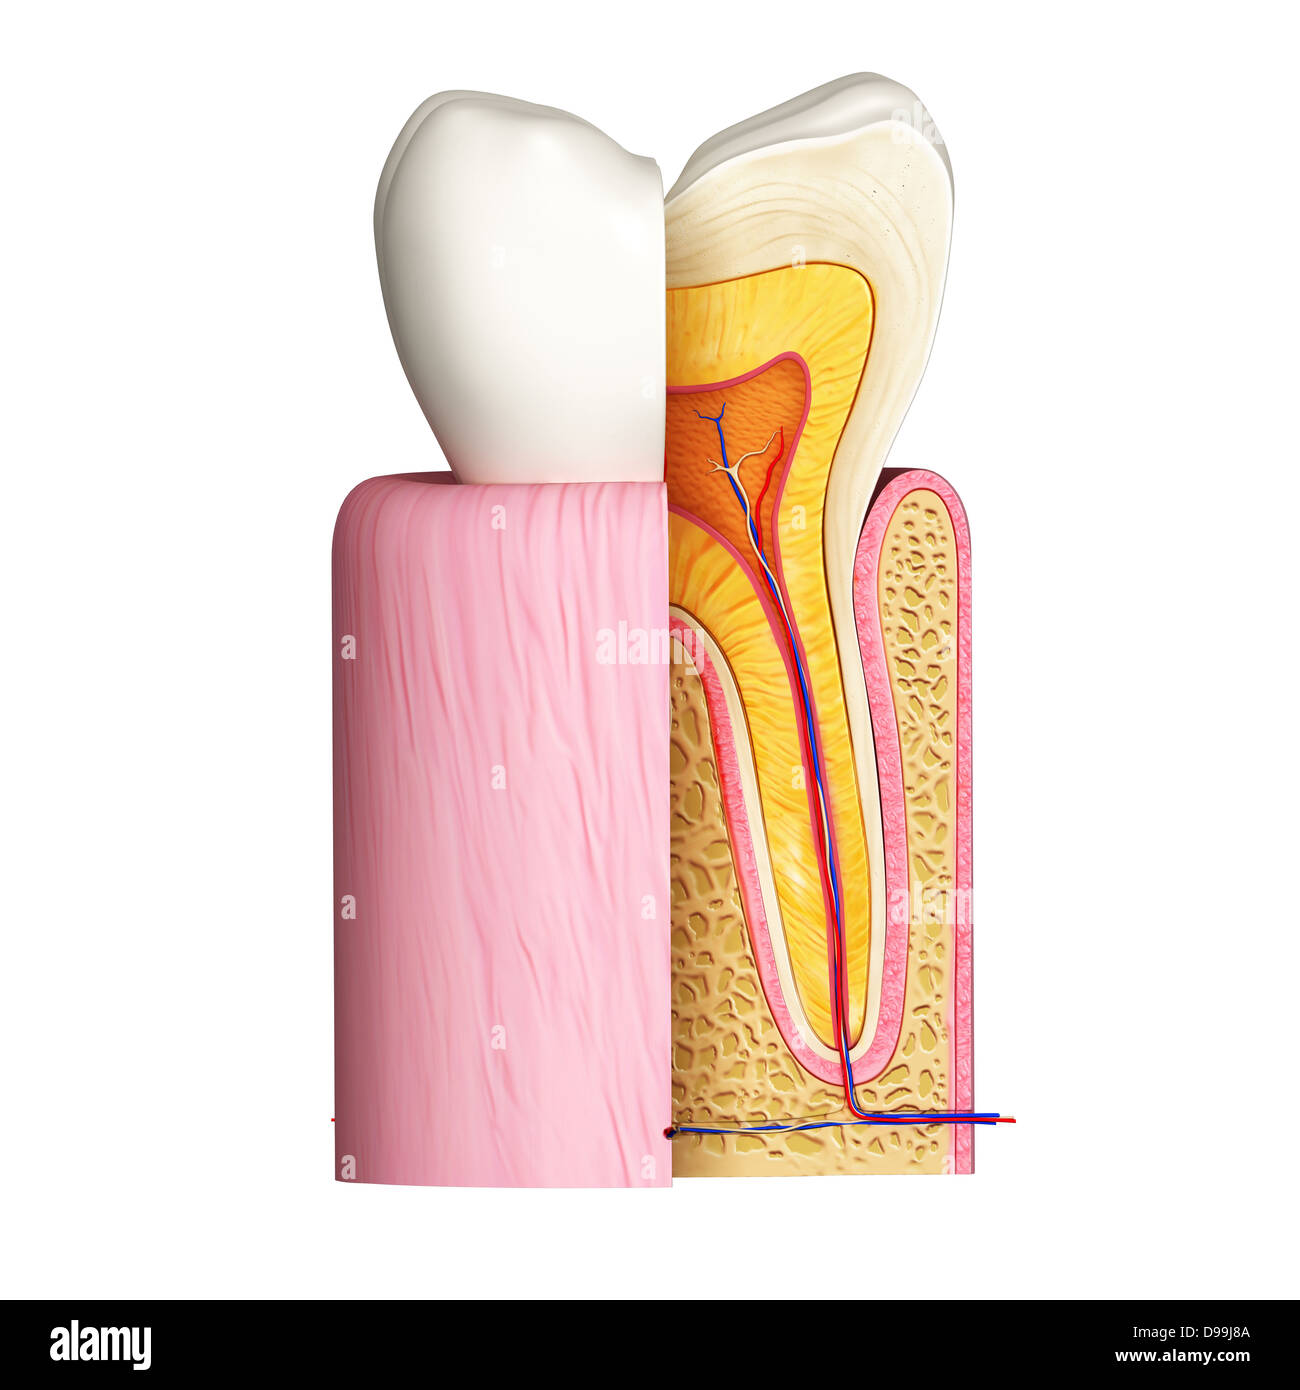 anatomy of human teeth cross section Stock Photo: 57374922 - Alamy